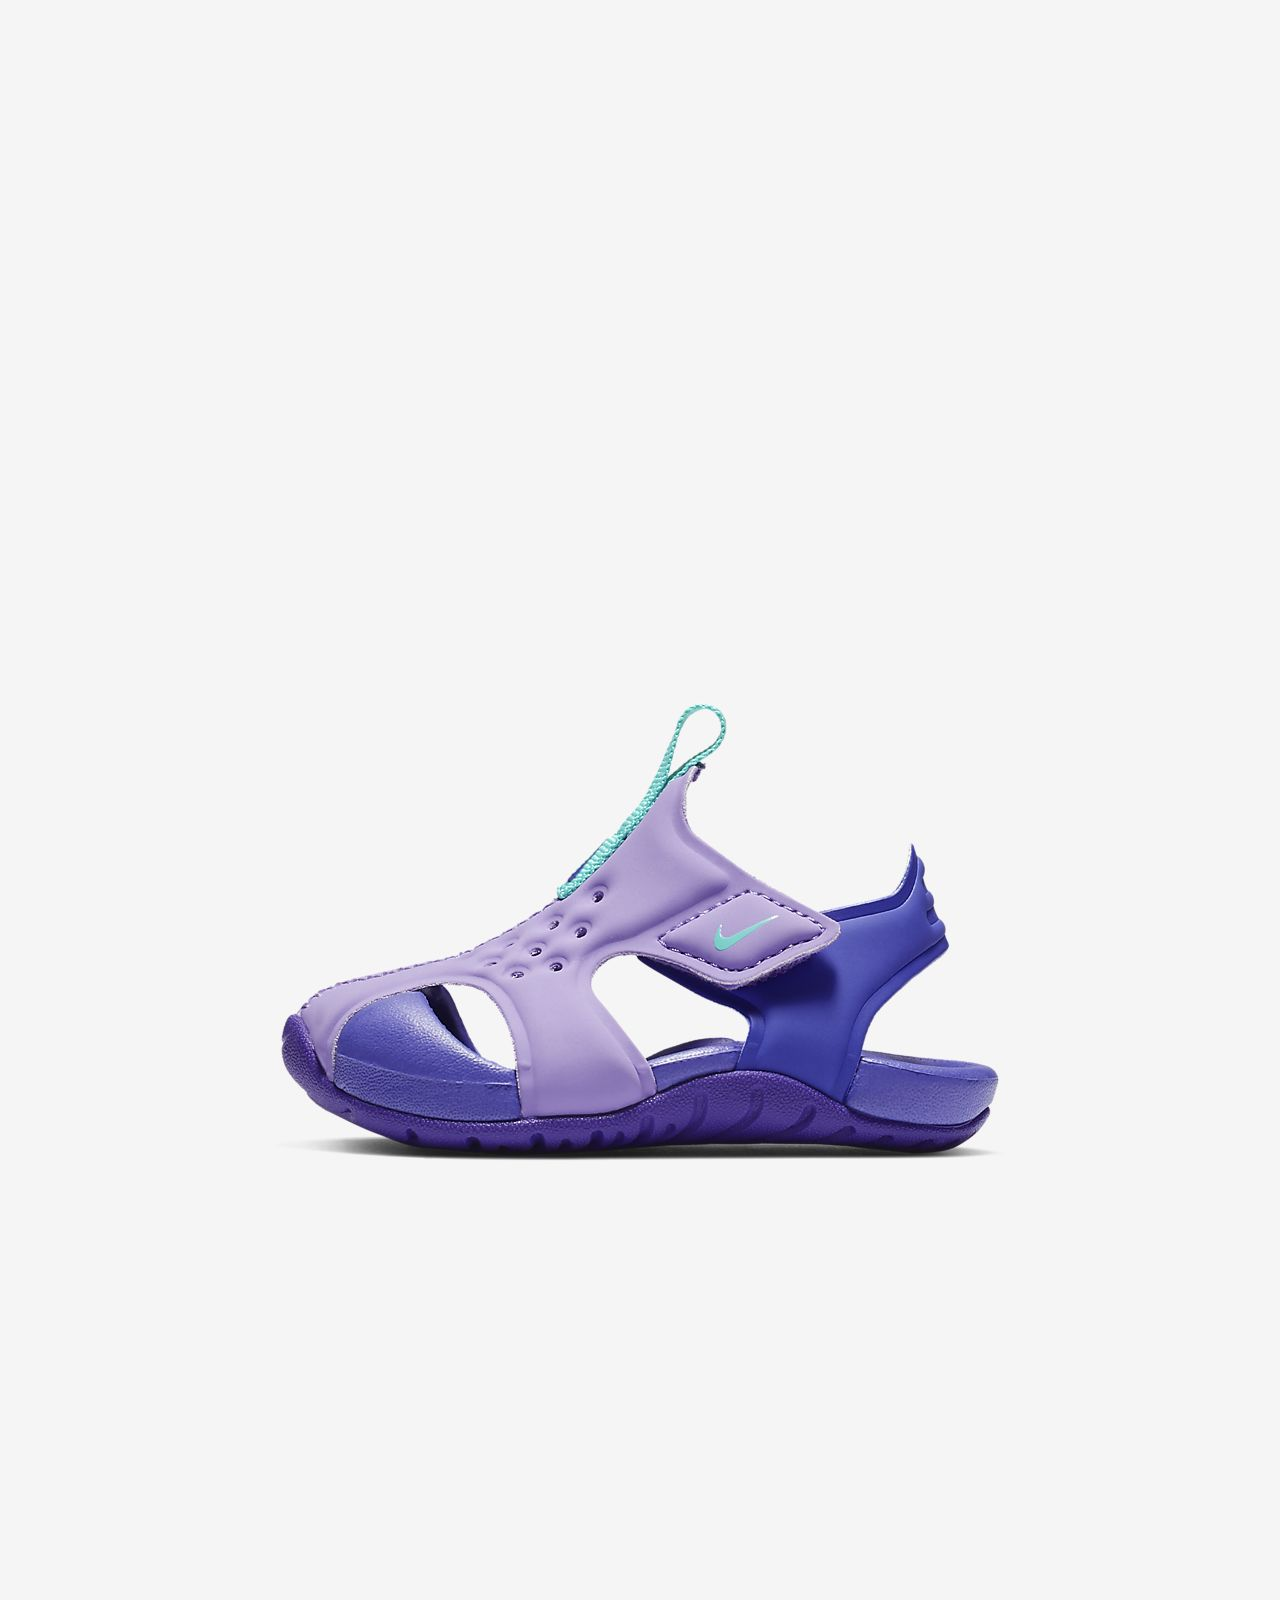 Nike Sunray Protect 2 Sandàlies - Nadó i infant